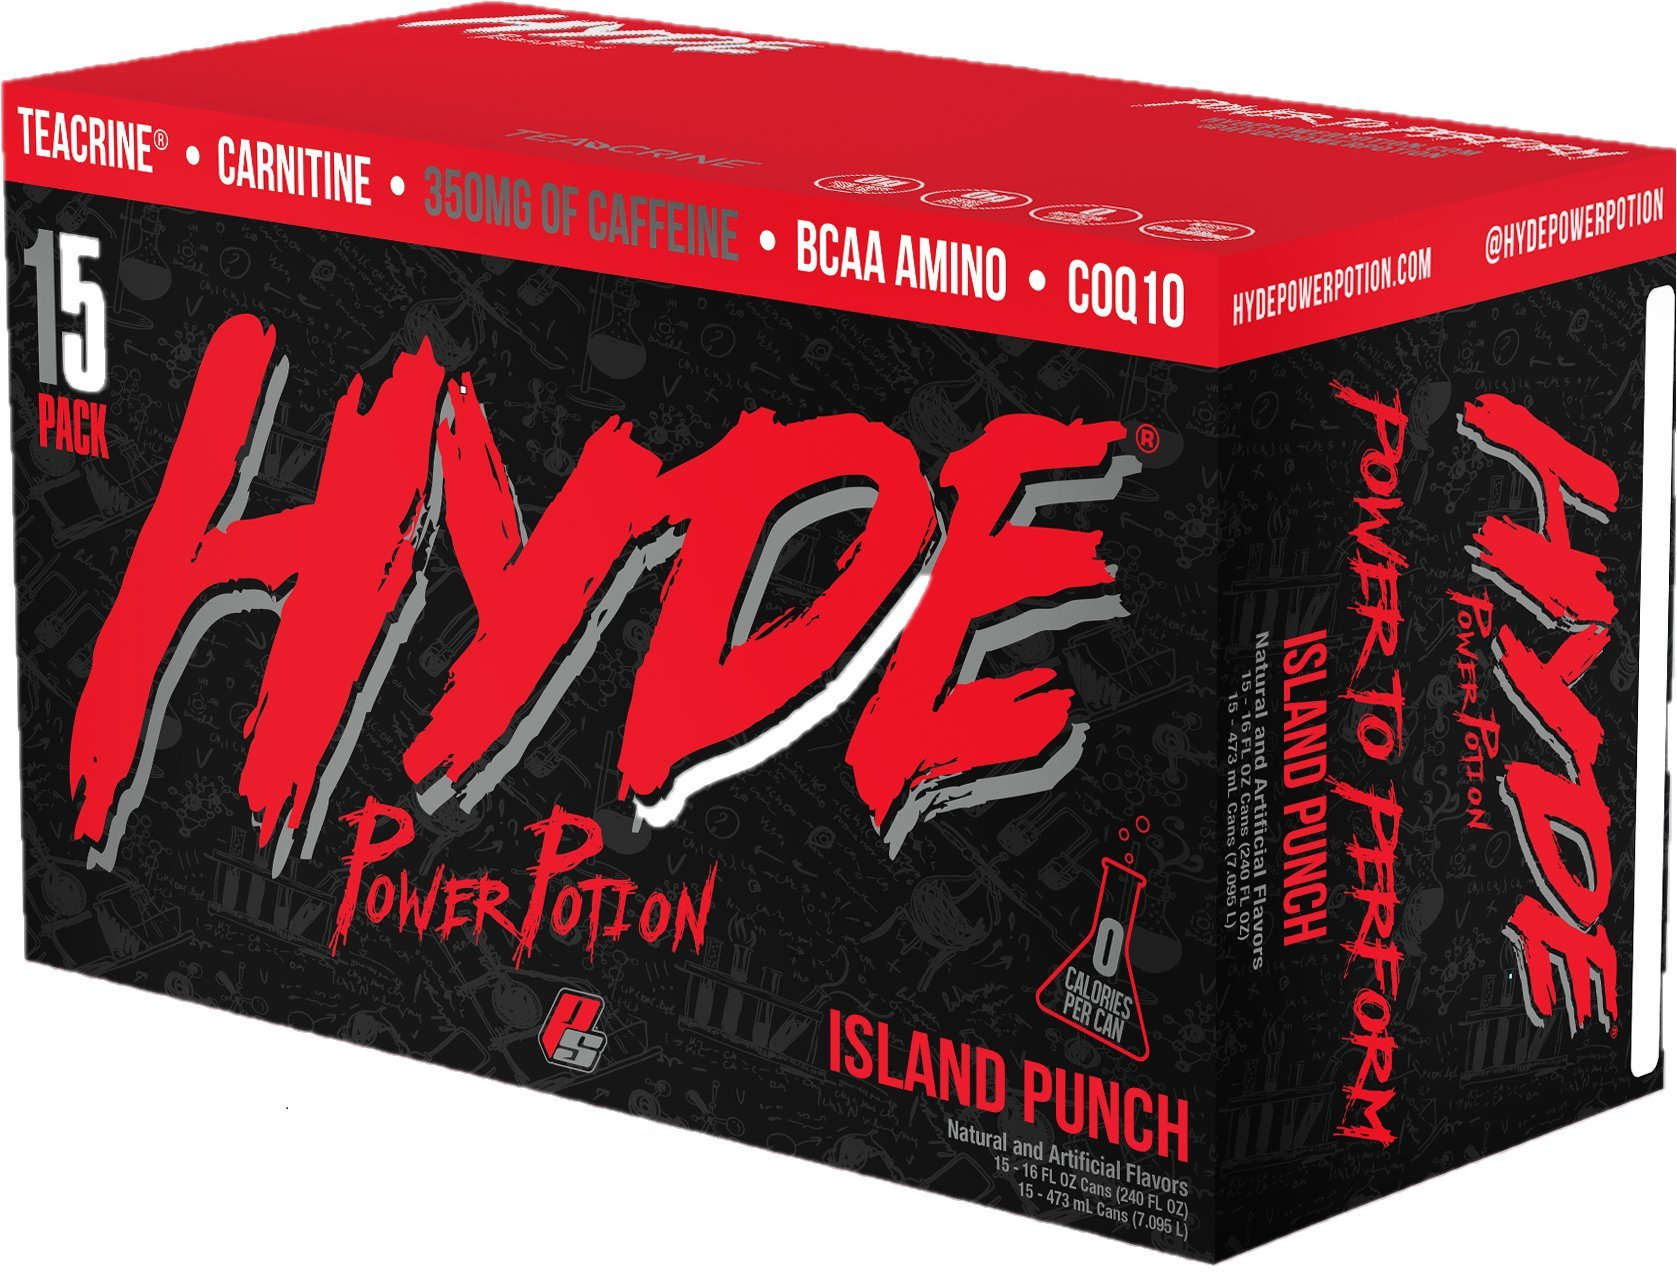 ProSupps Hyde Power Potion Energy Drink, 350 mg Caffeine, Zero Sugar, Zero Carbs, Carbonated 16 oz, 15-Count Box (Island Punch Flavor)